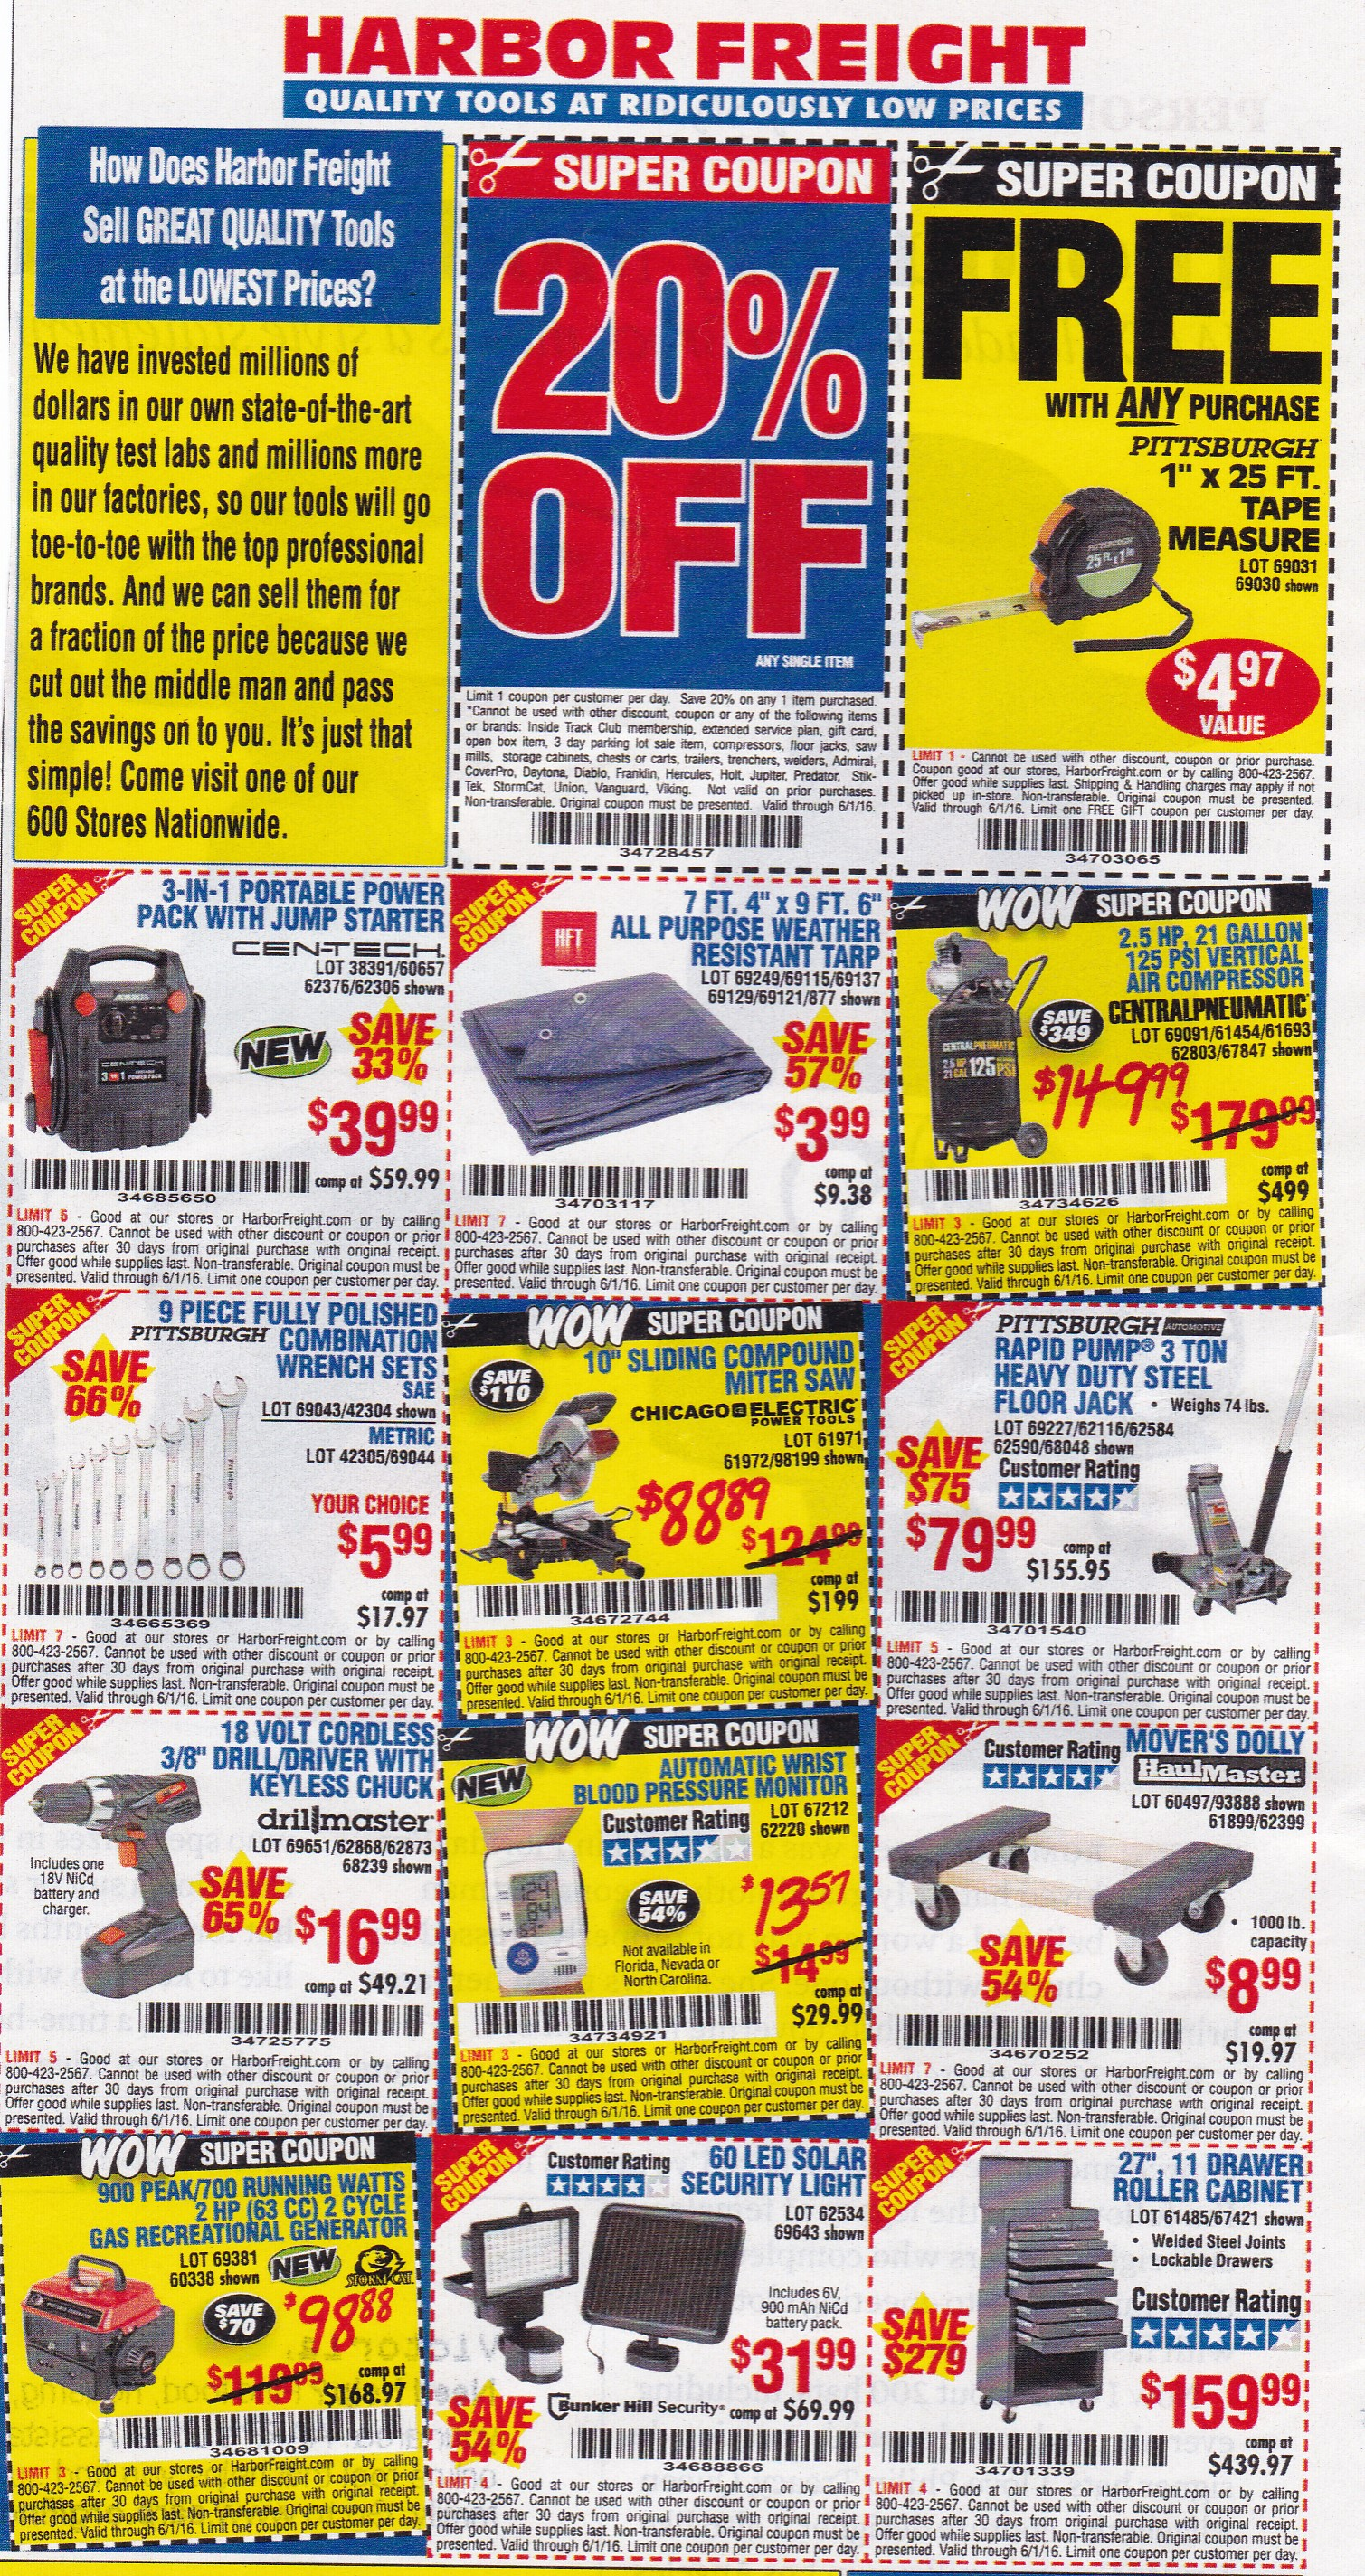 Harbor freight 67338 coupon under armour deals black friday engine harbor freight tools manual generators motors workshop alkaline battery benches coupon codes electric firebird garage ideas garages jewelry tools fandeluxe Gallery